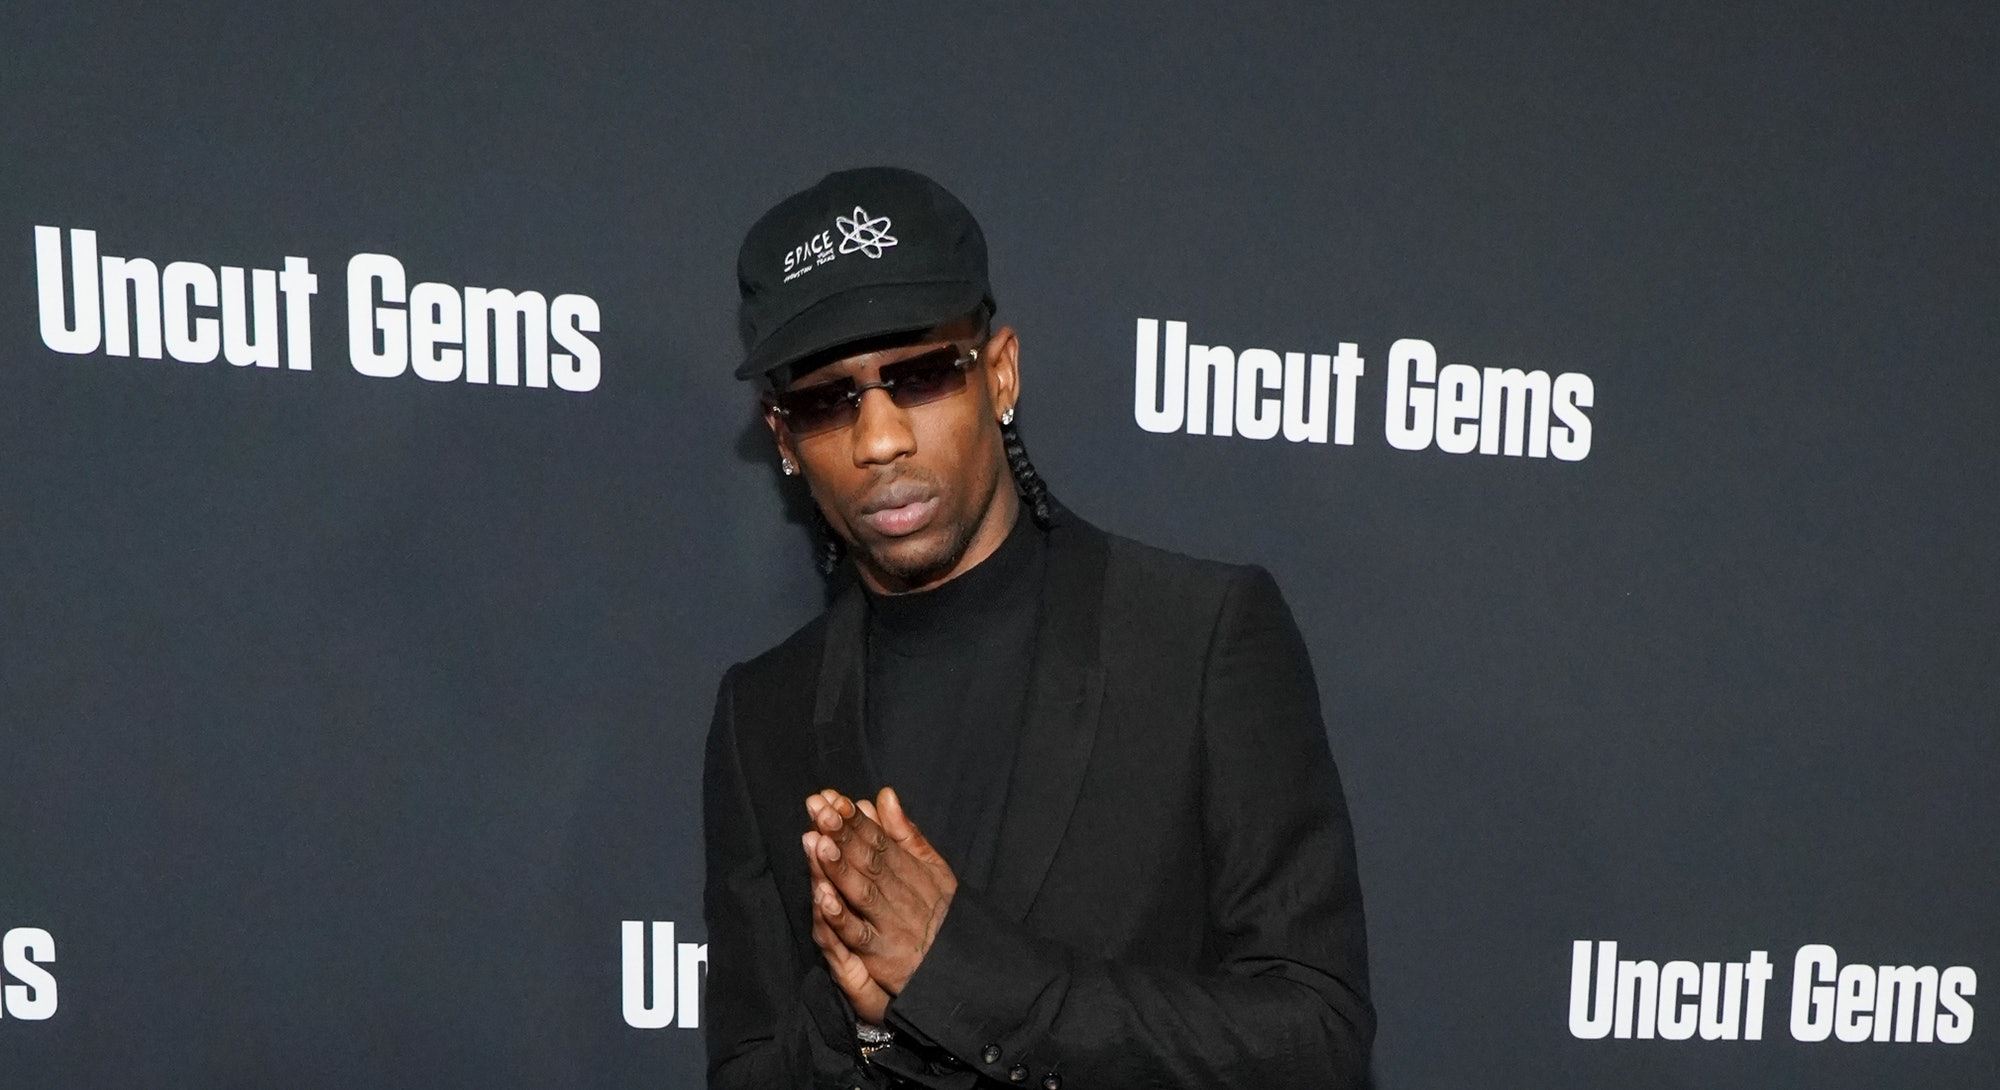 """HOLLYWOOD, CALIFORNIA - DECEMBER 11: Travis Scott attends the premiere of A24's """"Uncut Gems"""" at The Dome at Arclight Hollywood on December 11, 2019 in Hollywood, California. (Photo by Rachel Luna/WireImage)"""